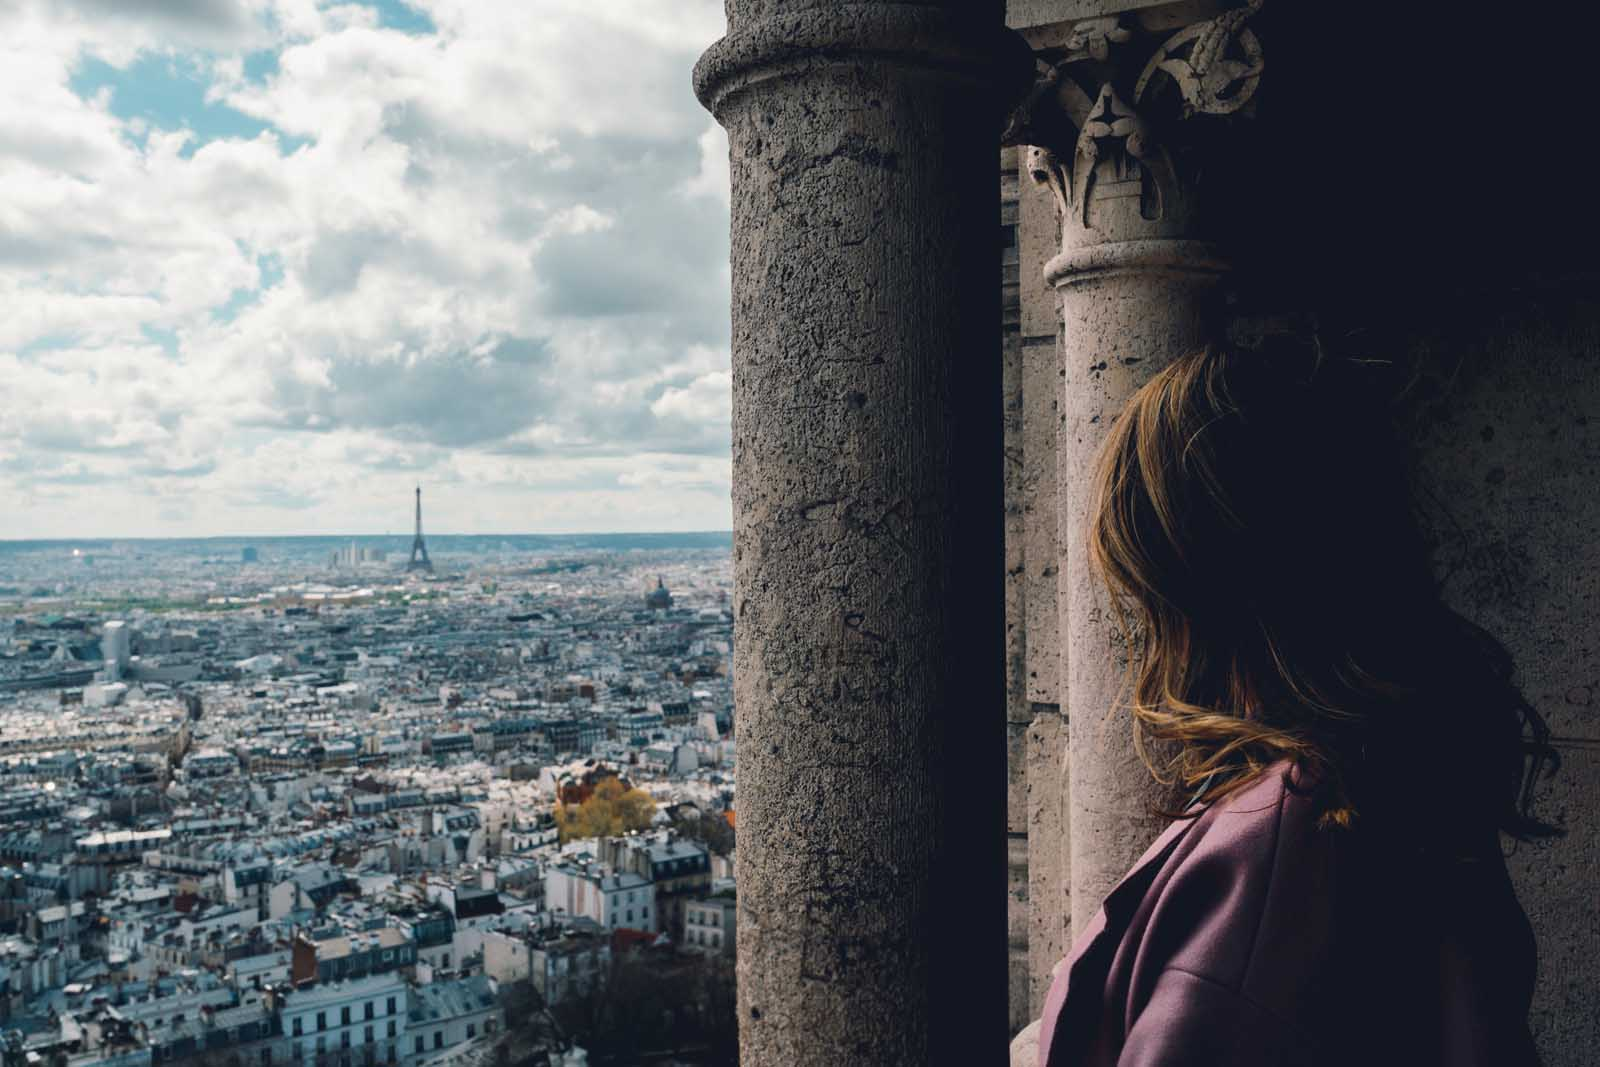 Megan enjoying the view from Basilica of the Sacred Heart in Montmartre Paris